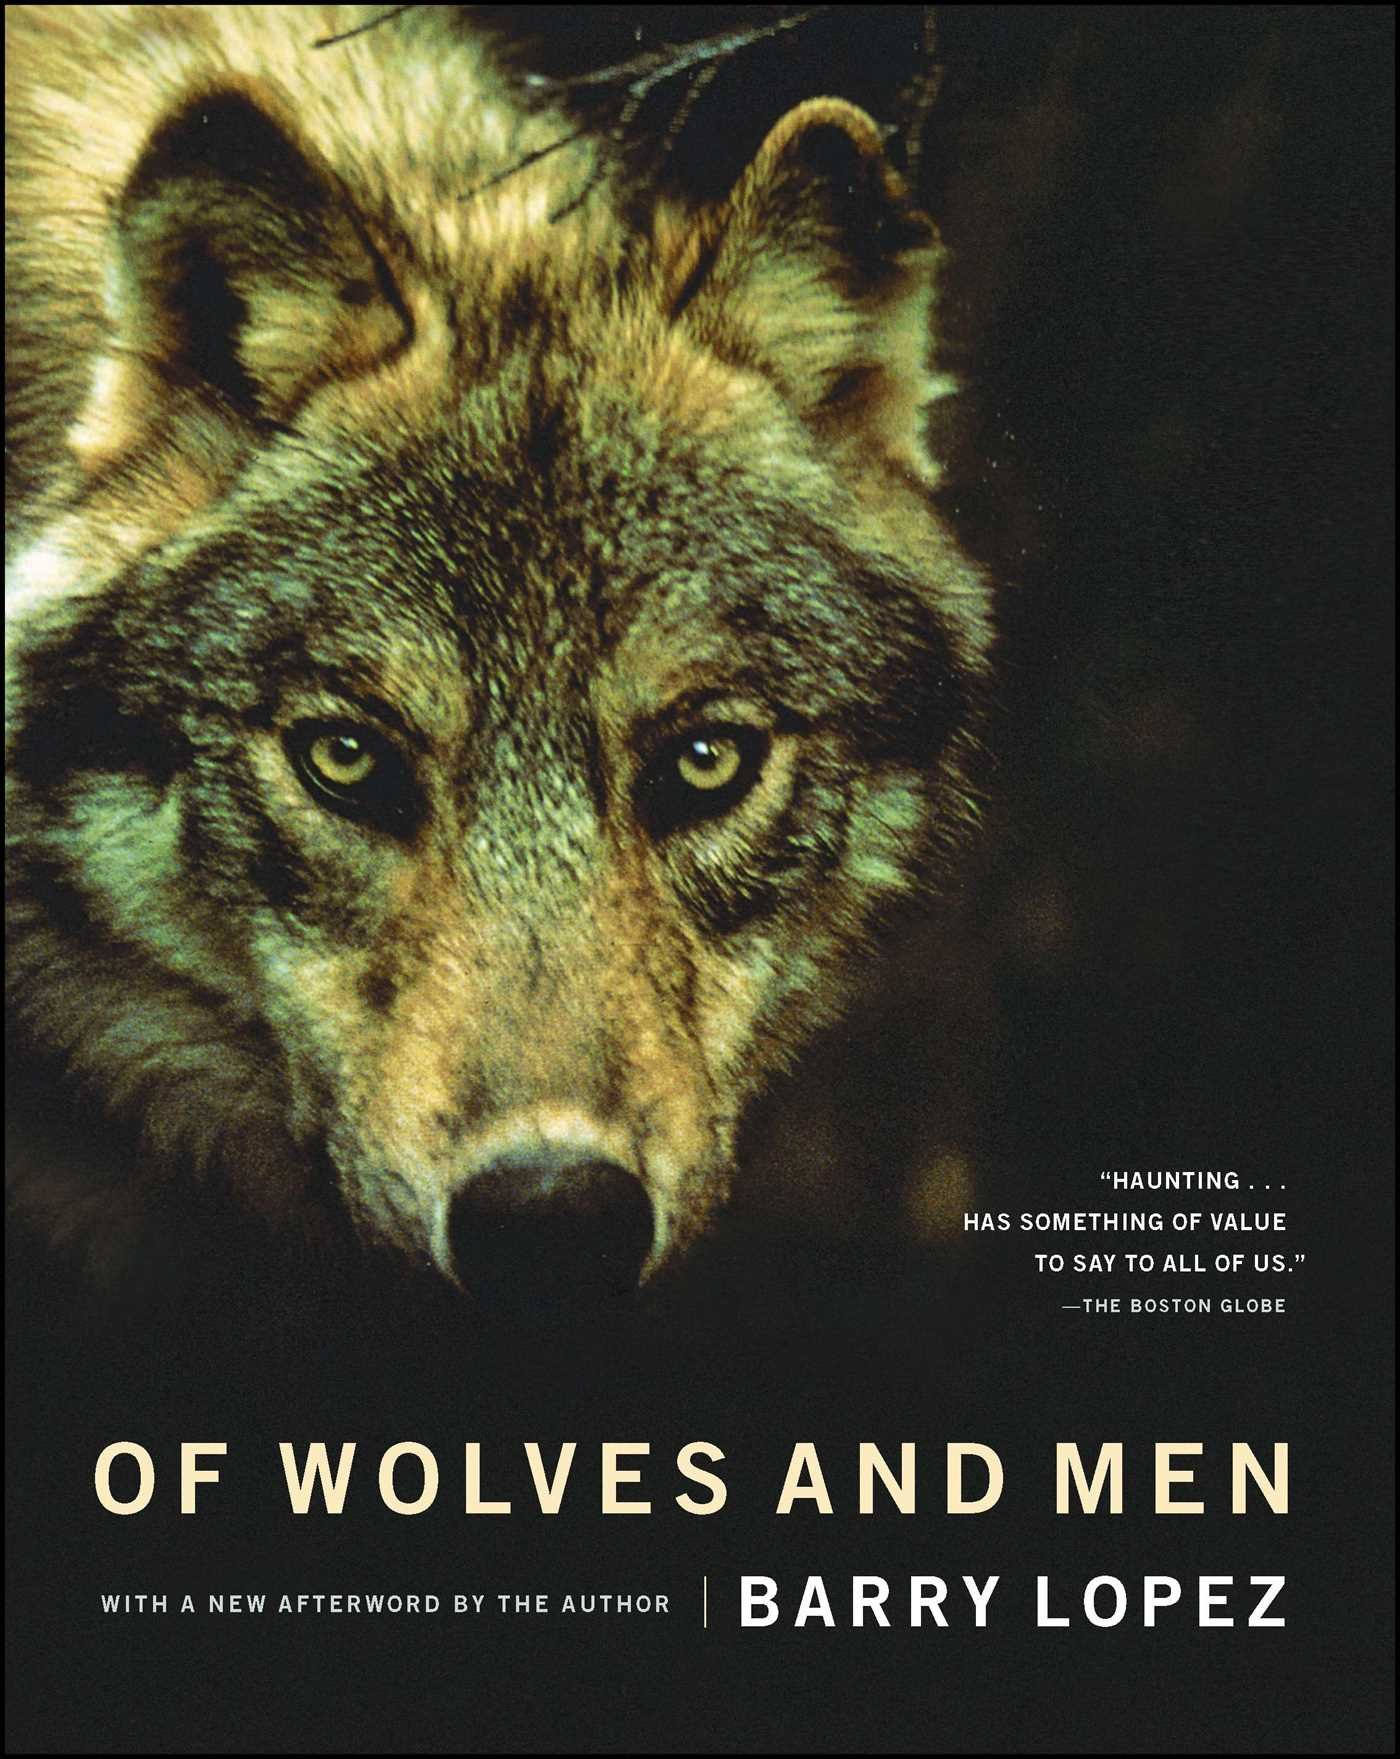 Of Wolves And Men Lopez Barry 9780684163222 Books Amazon Ca